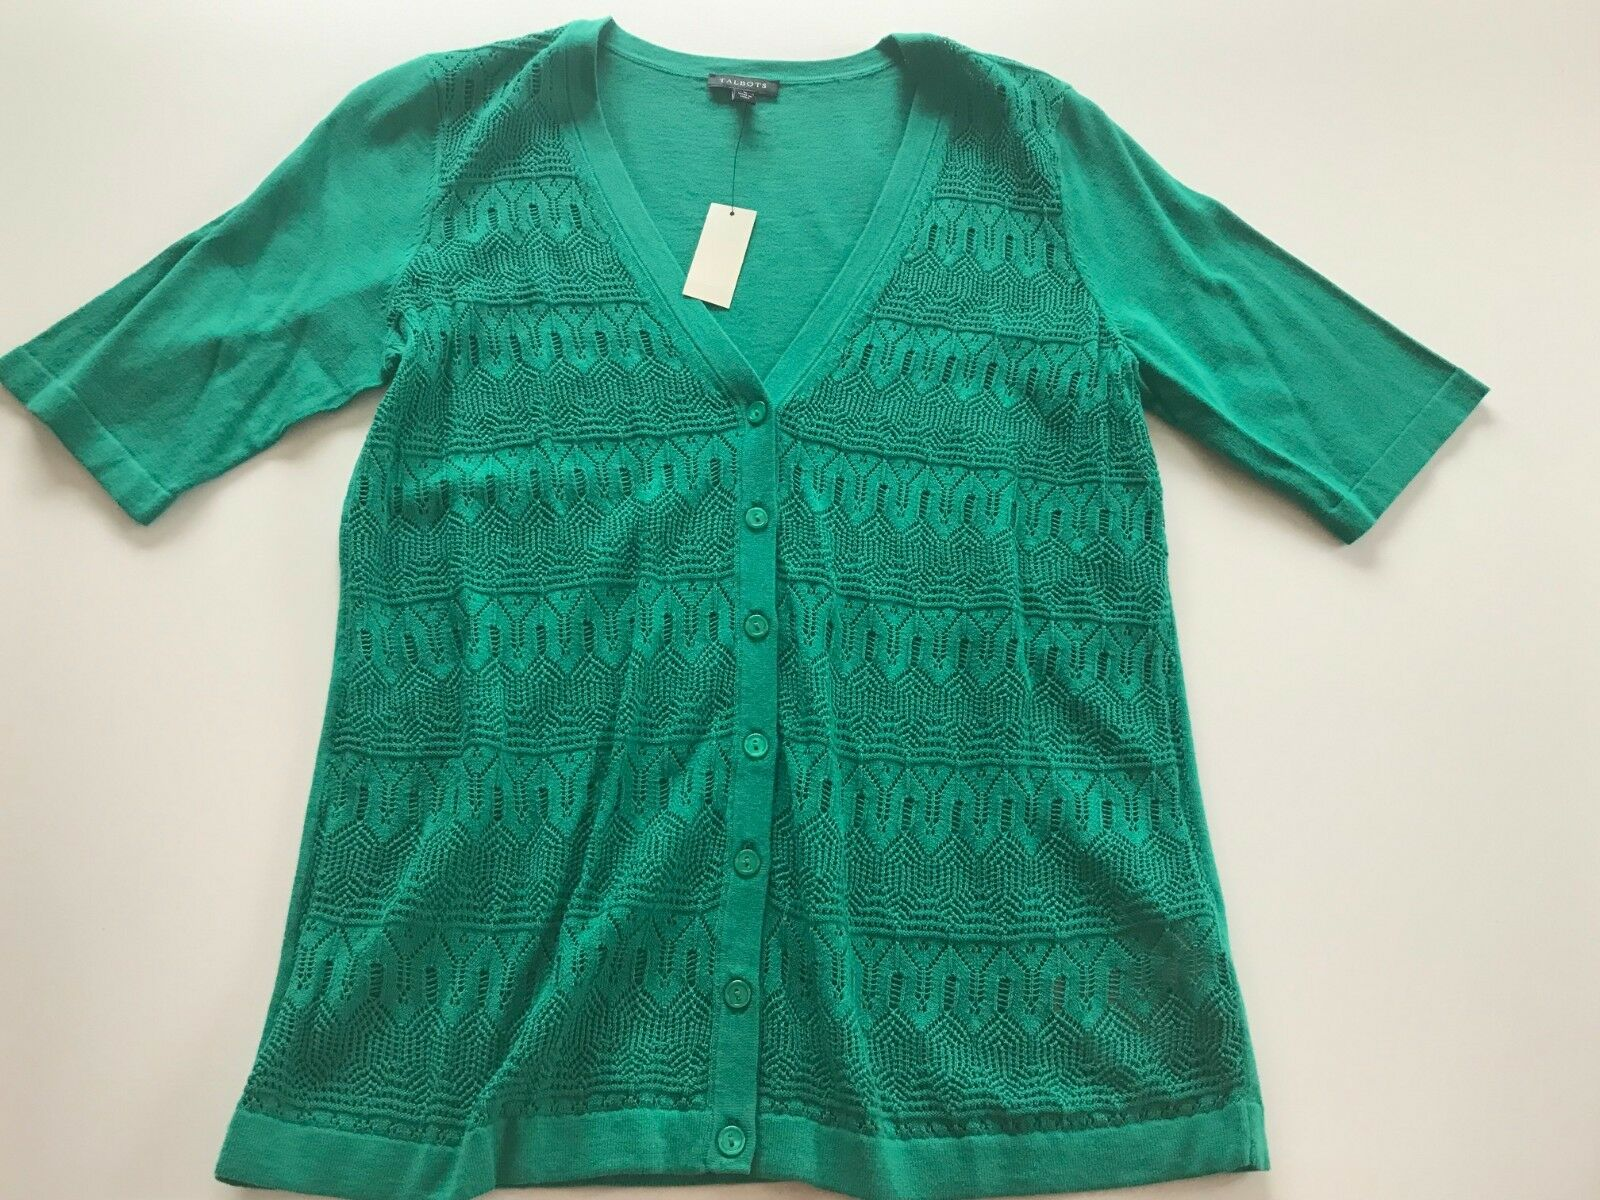 NWT TALBOTS Women's KELLY GREEN SHORT SLEEVE Cardigan Sweater S 69.00